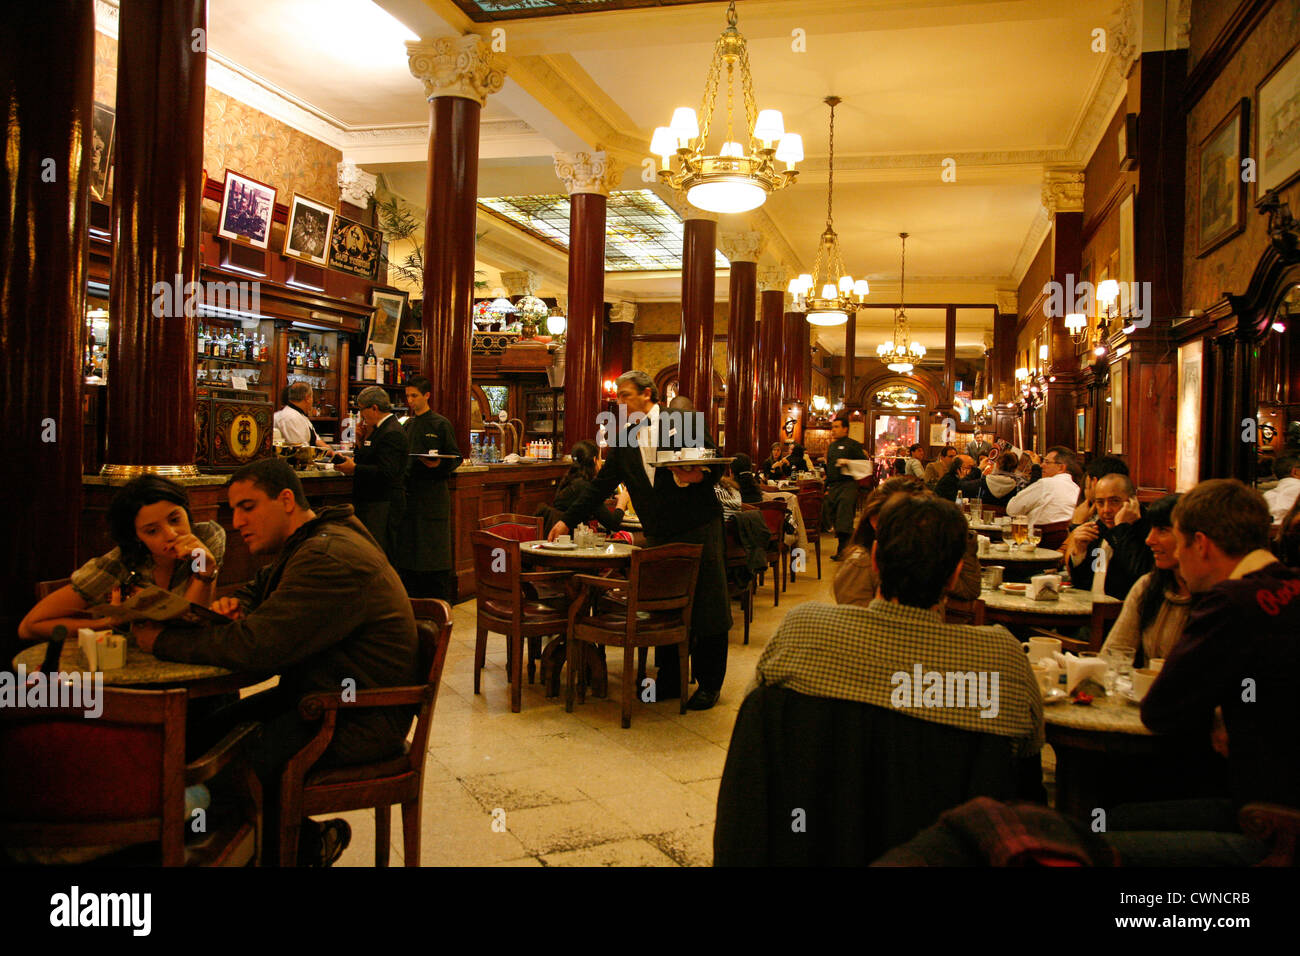 Cafe Tortoni, Buenos Aires, Argentina. - Stock Image